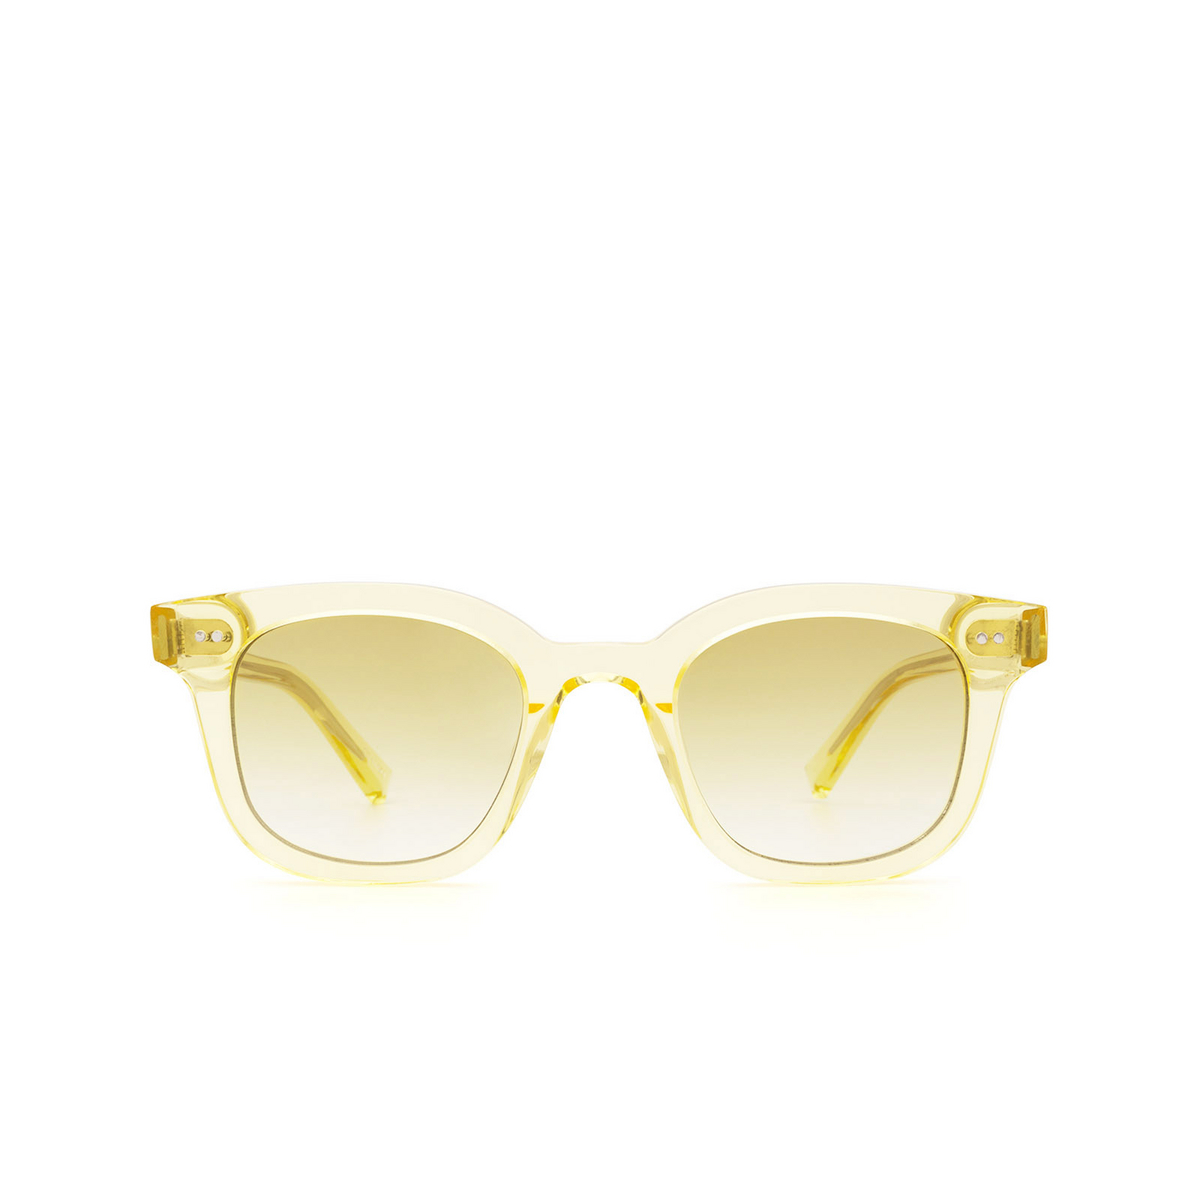 Chimi® Square Sunglasses: 02 color Yellow - front view.